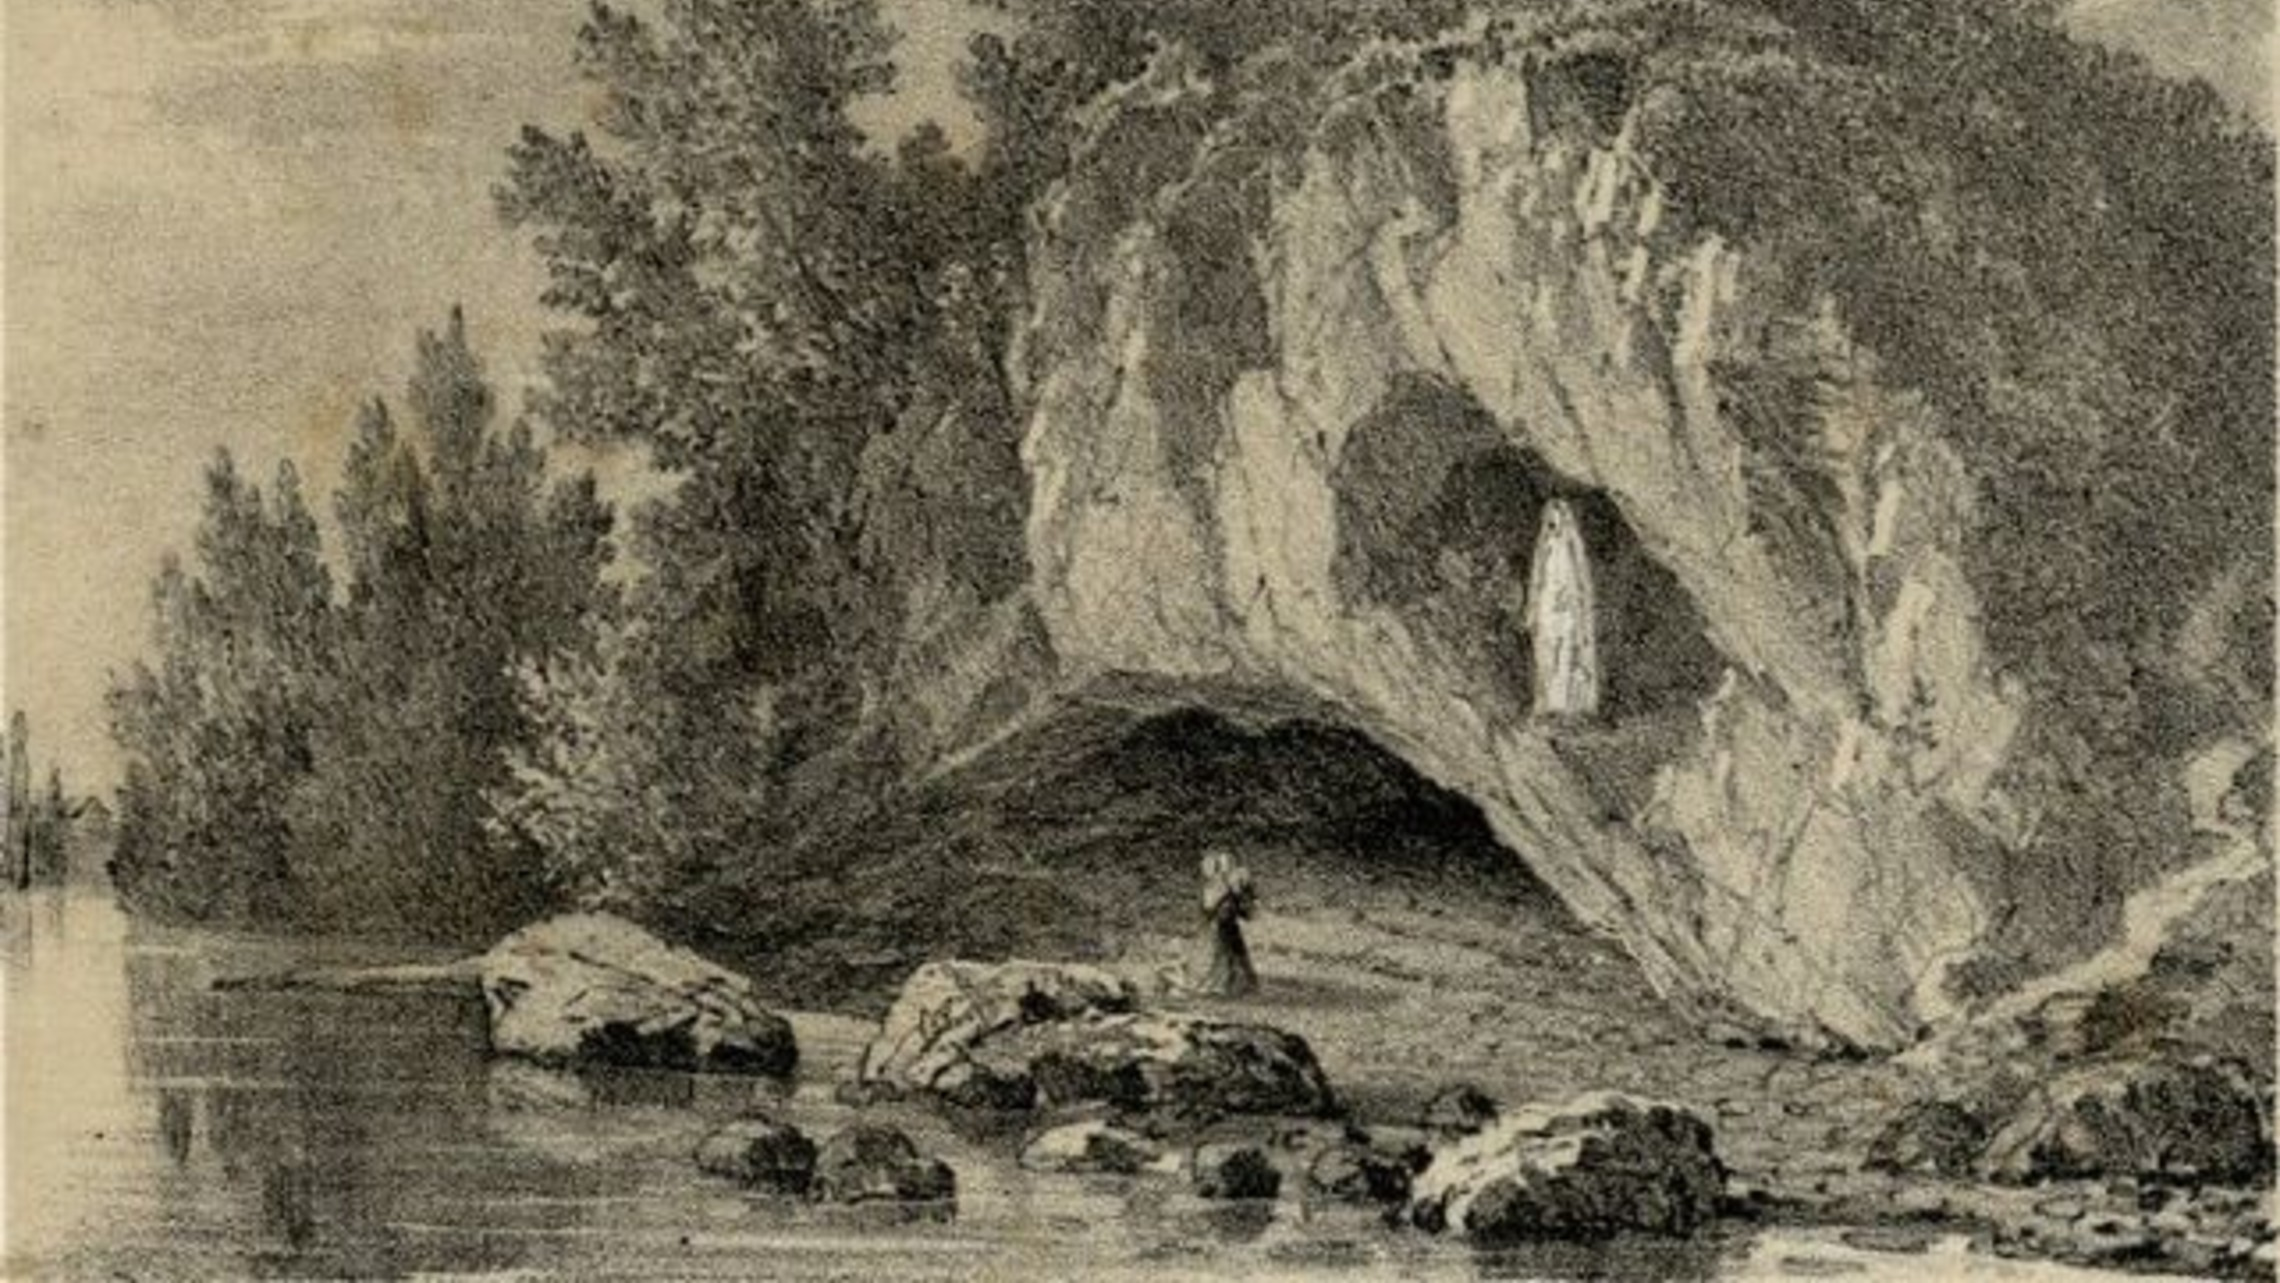 pencil sketch of the Gave River, Massaibelle cliff, and grotto